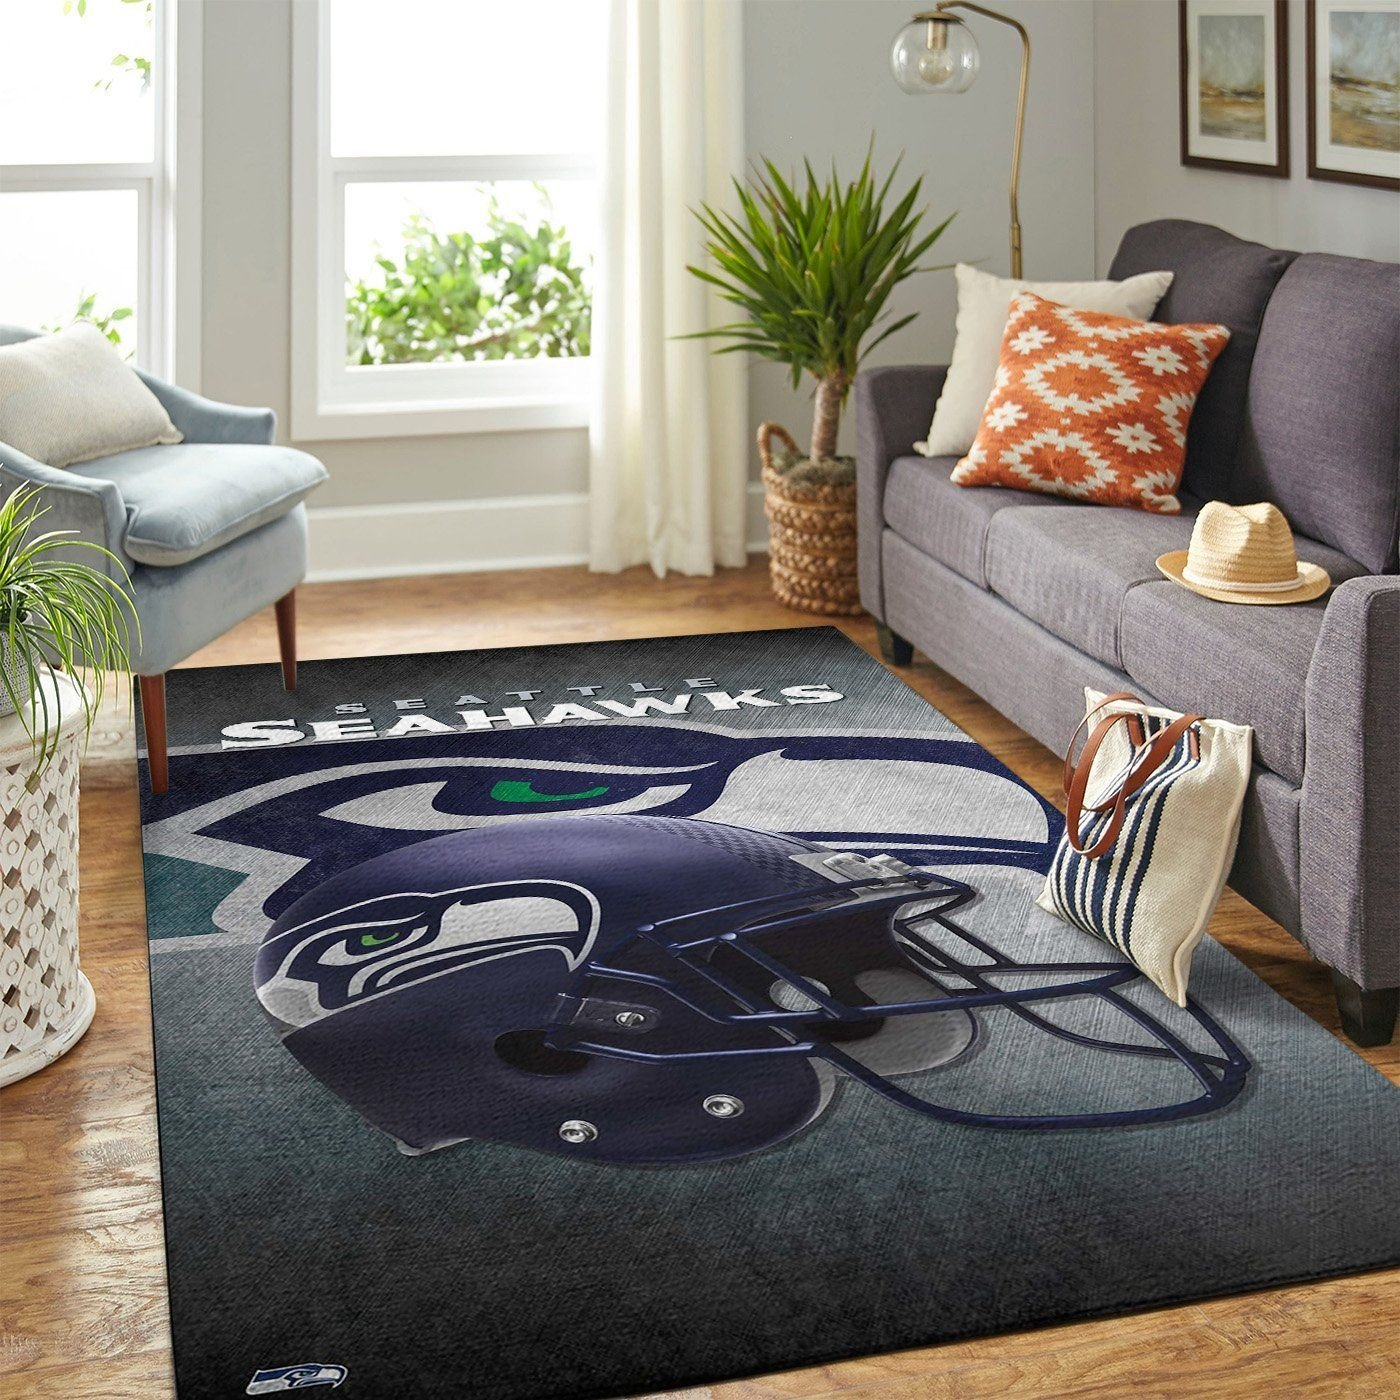 Amazon Seattle Seahawks Living Room Area No4973 Rug